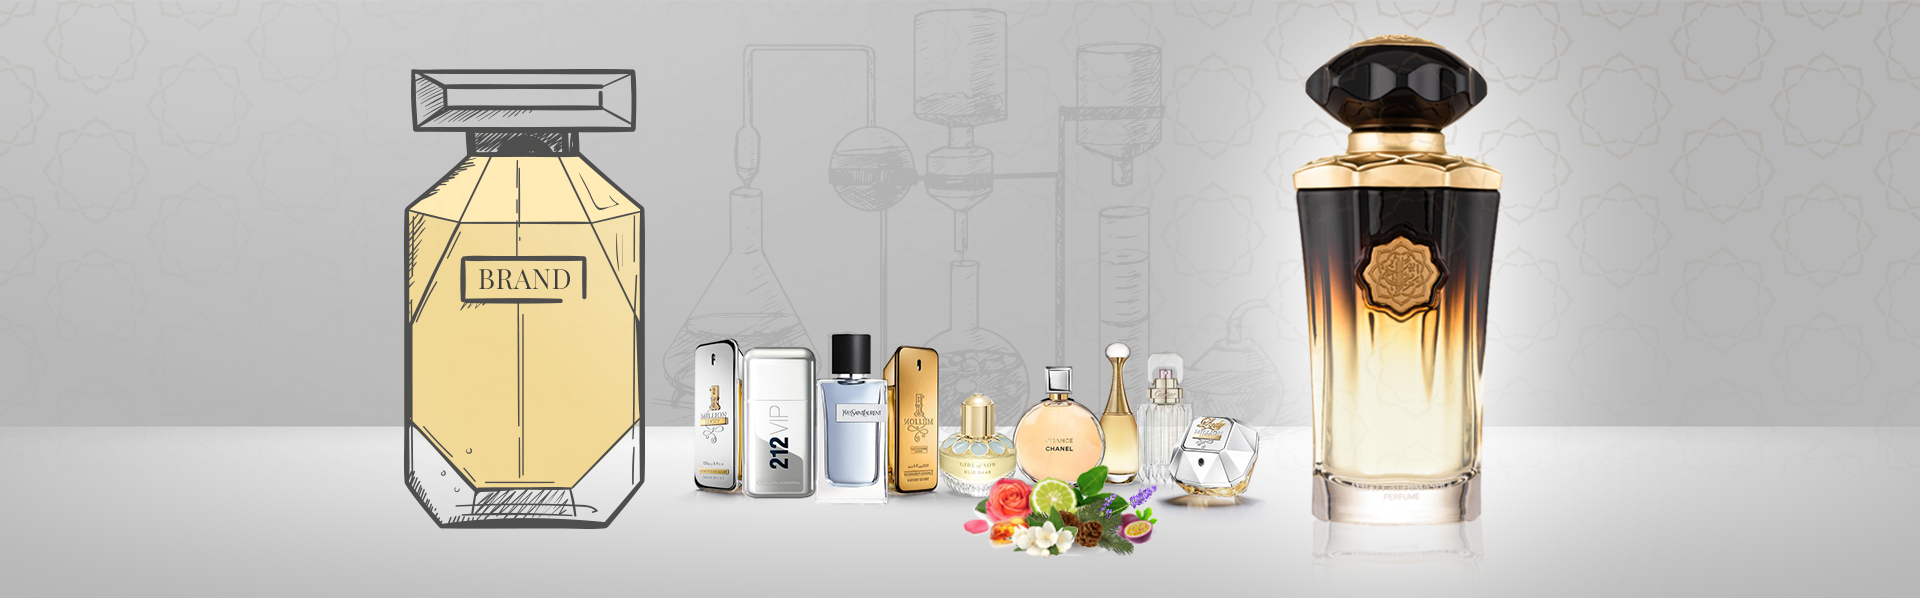 Why Copies of Branded Perfumes?